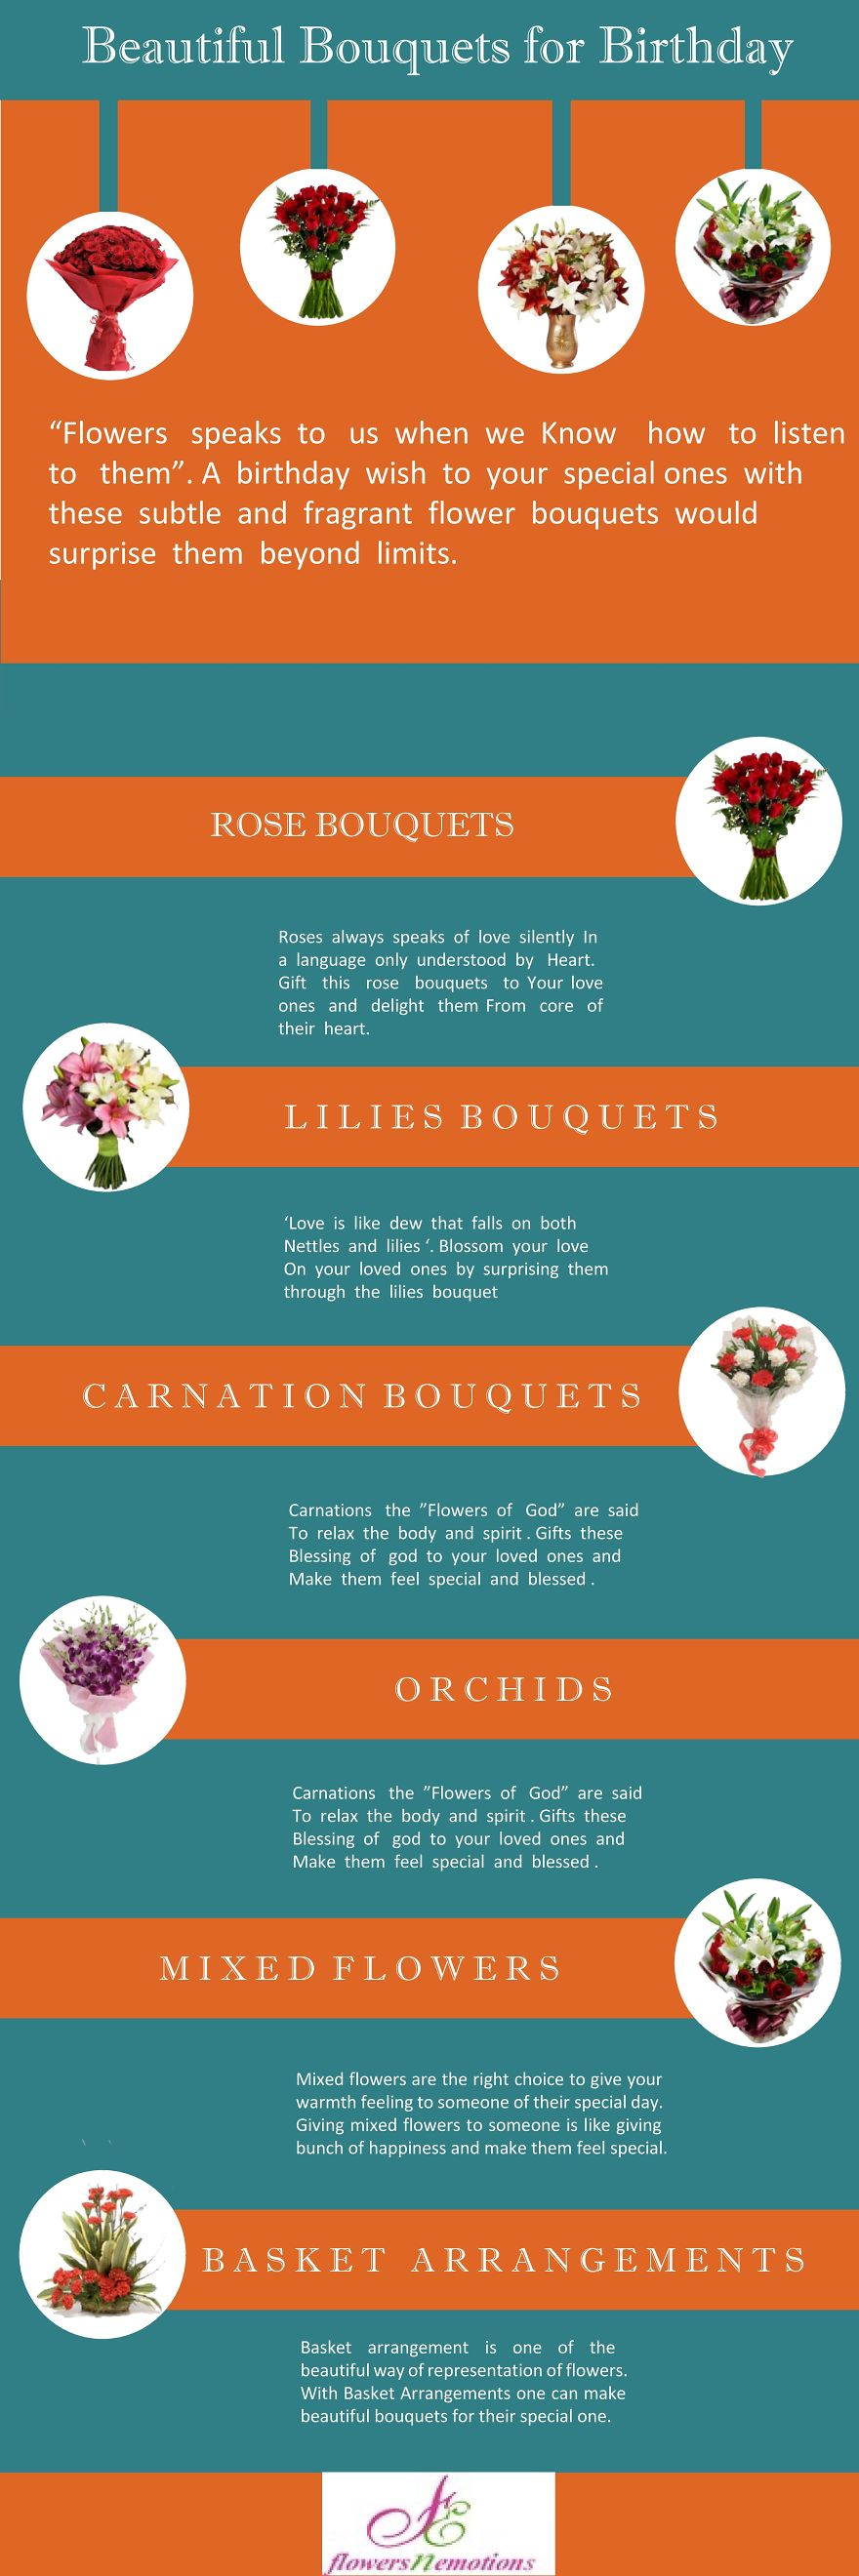 Beautiful Bouquets [Infographic]